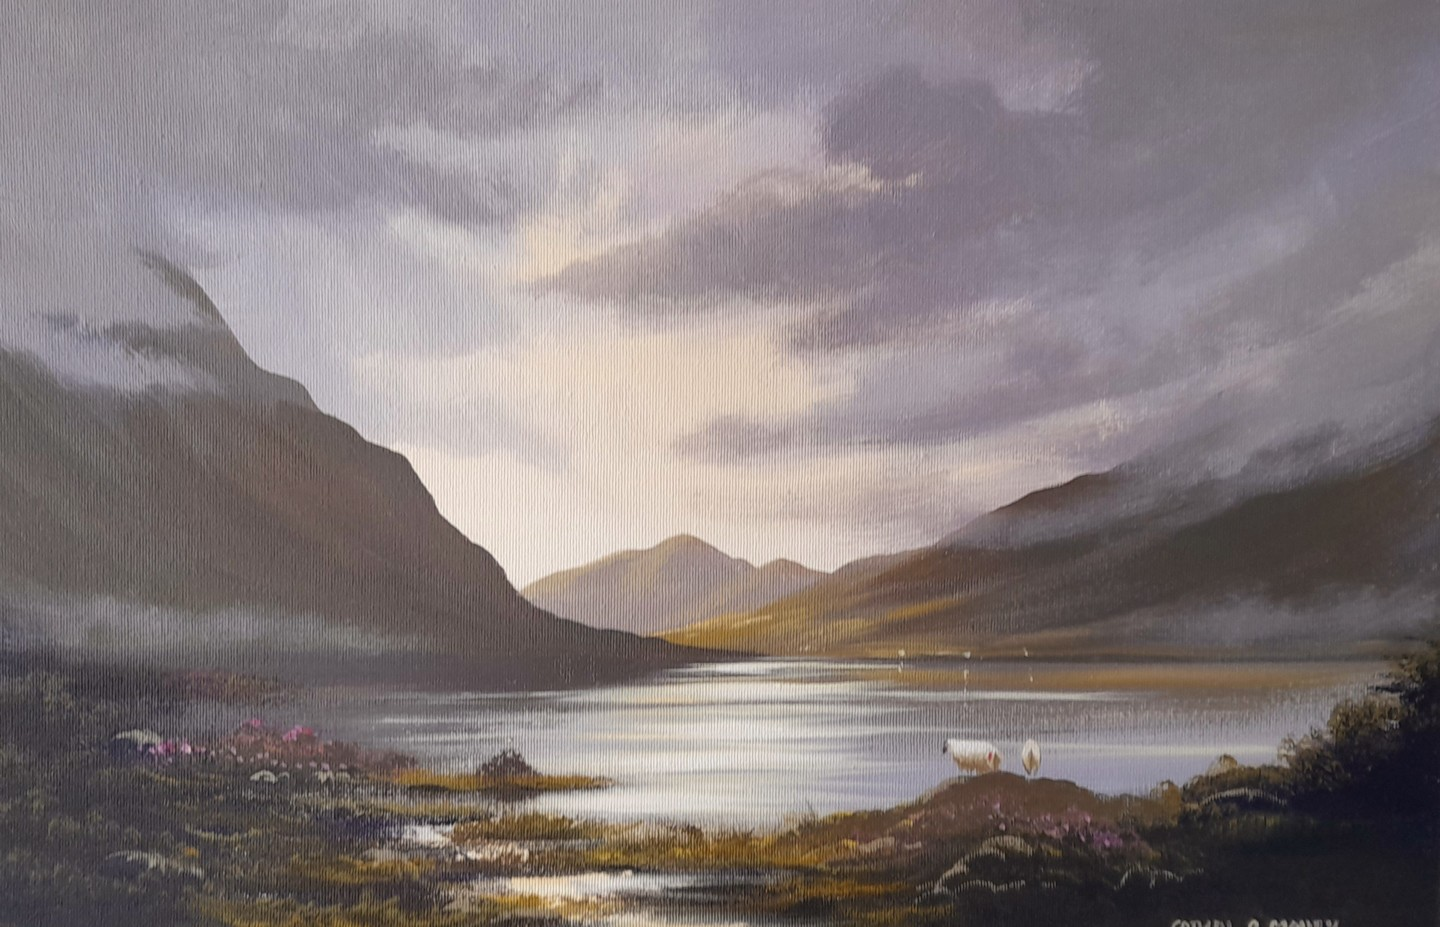 Cathal O Malley - Summer  in maam